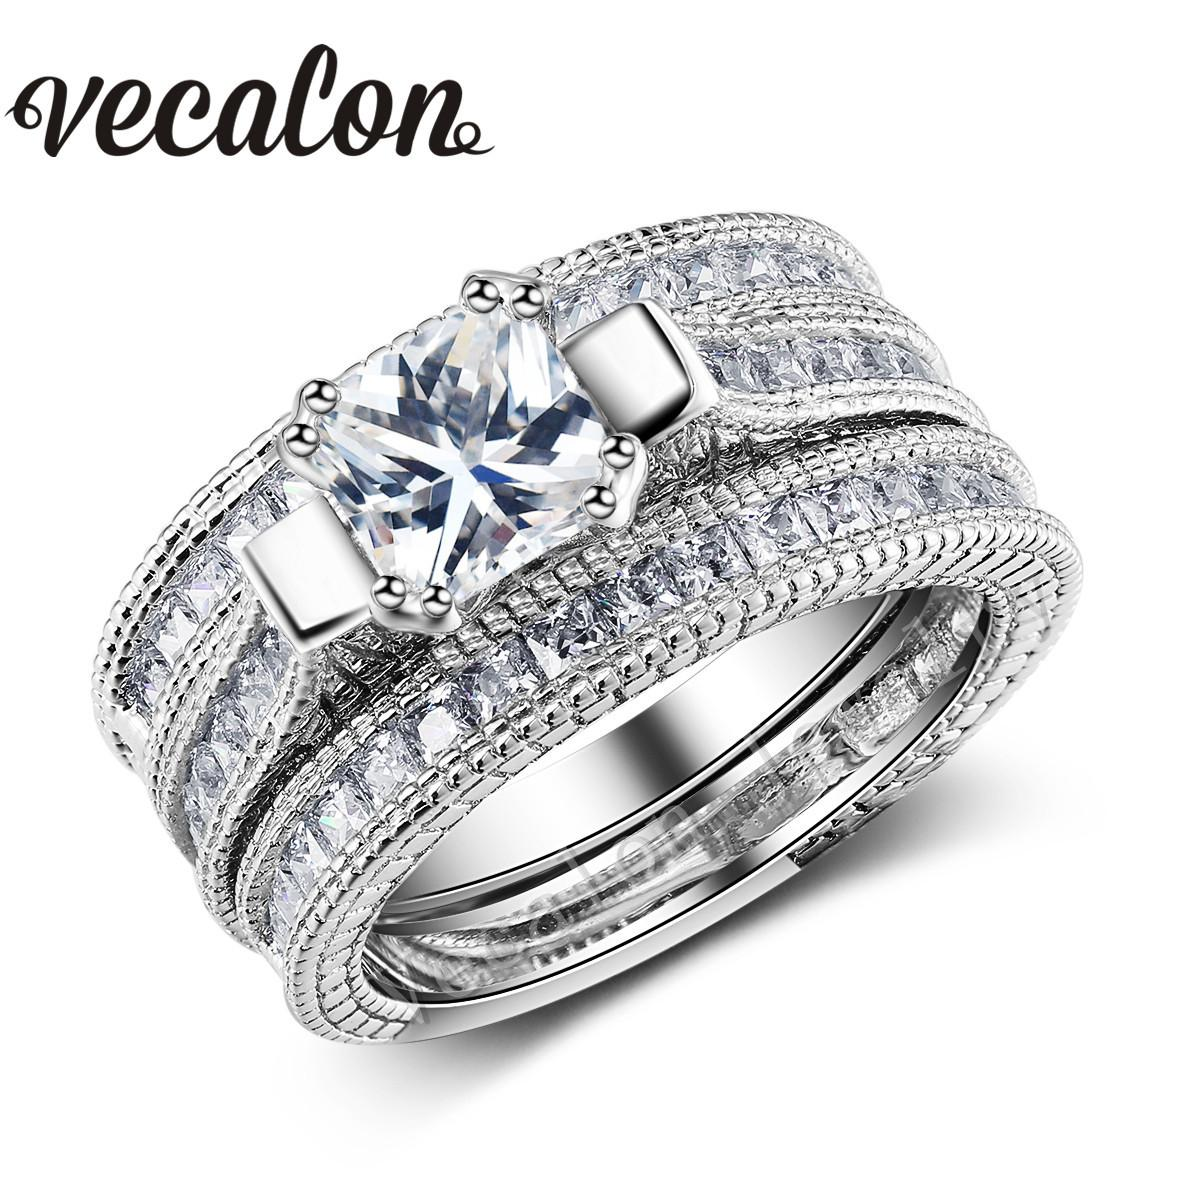 in princes engagement dp pave cut ring tw diamond platinum wedding ct set encrusted amazon princess com rings